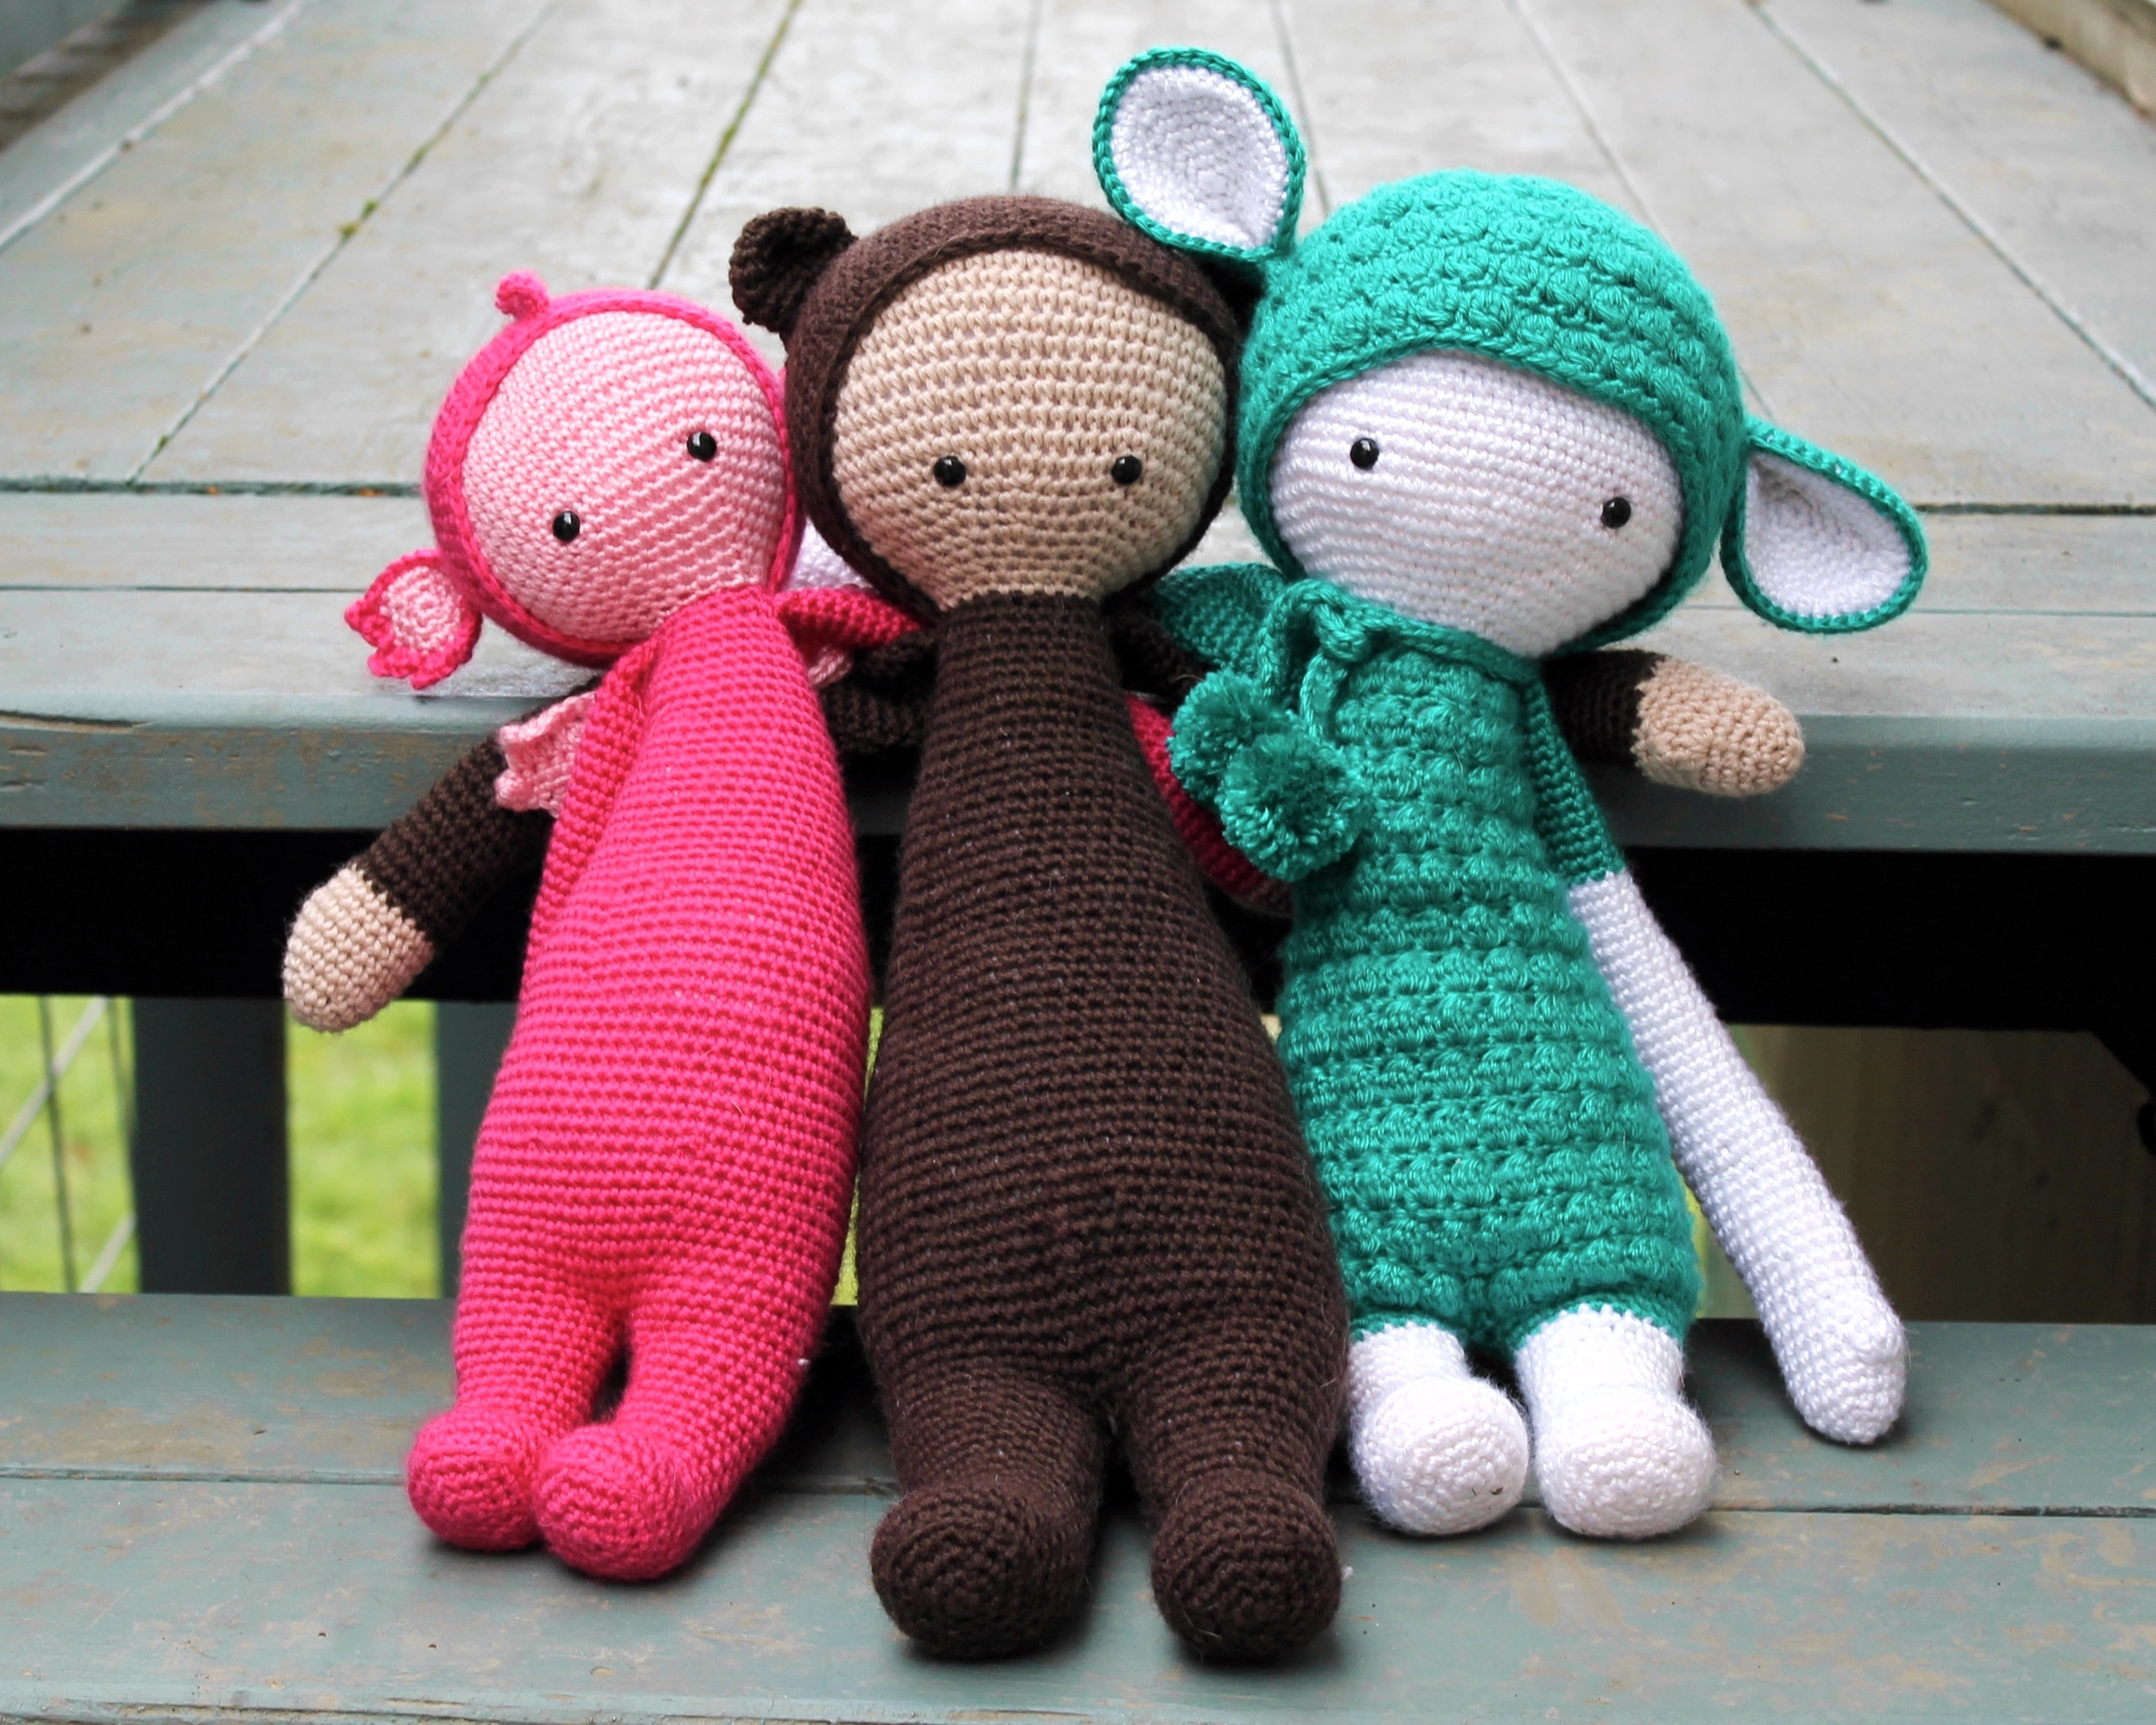 Lalylala amigurumi dolls - pink dragon, brown bear, teal sheep